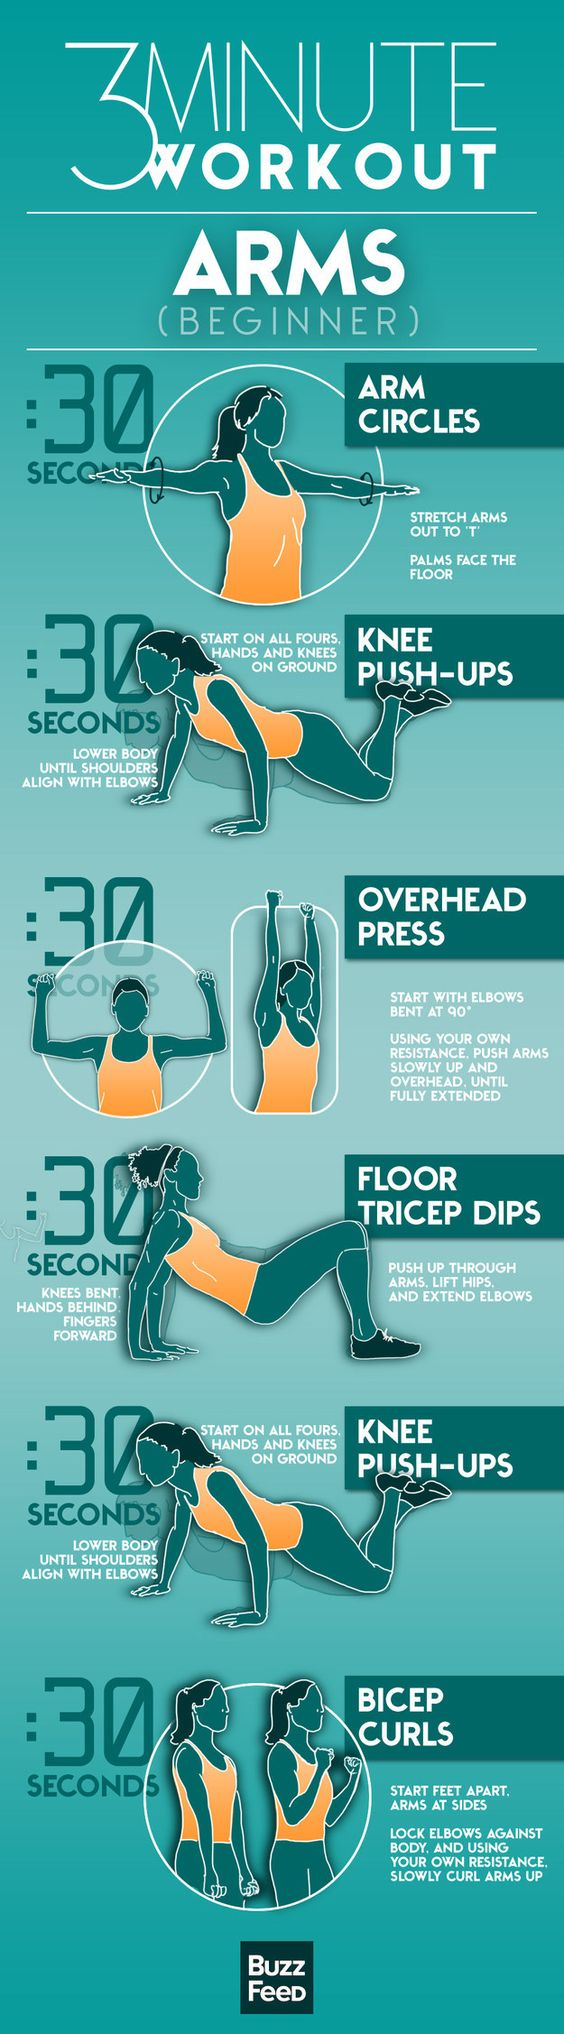 3-minute-arm-workout